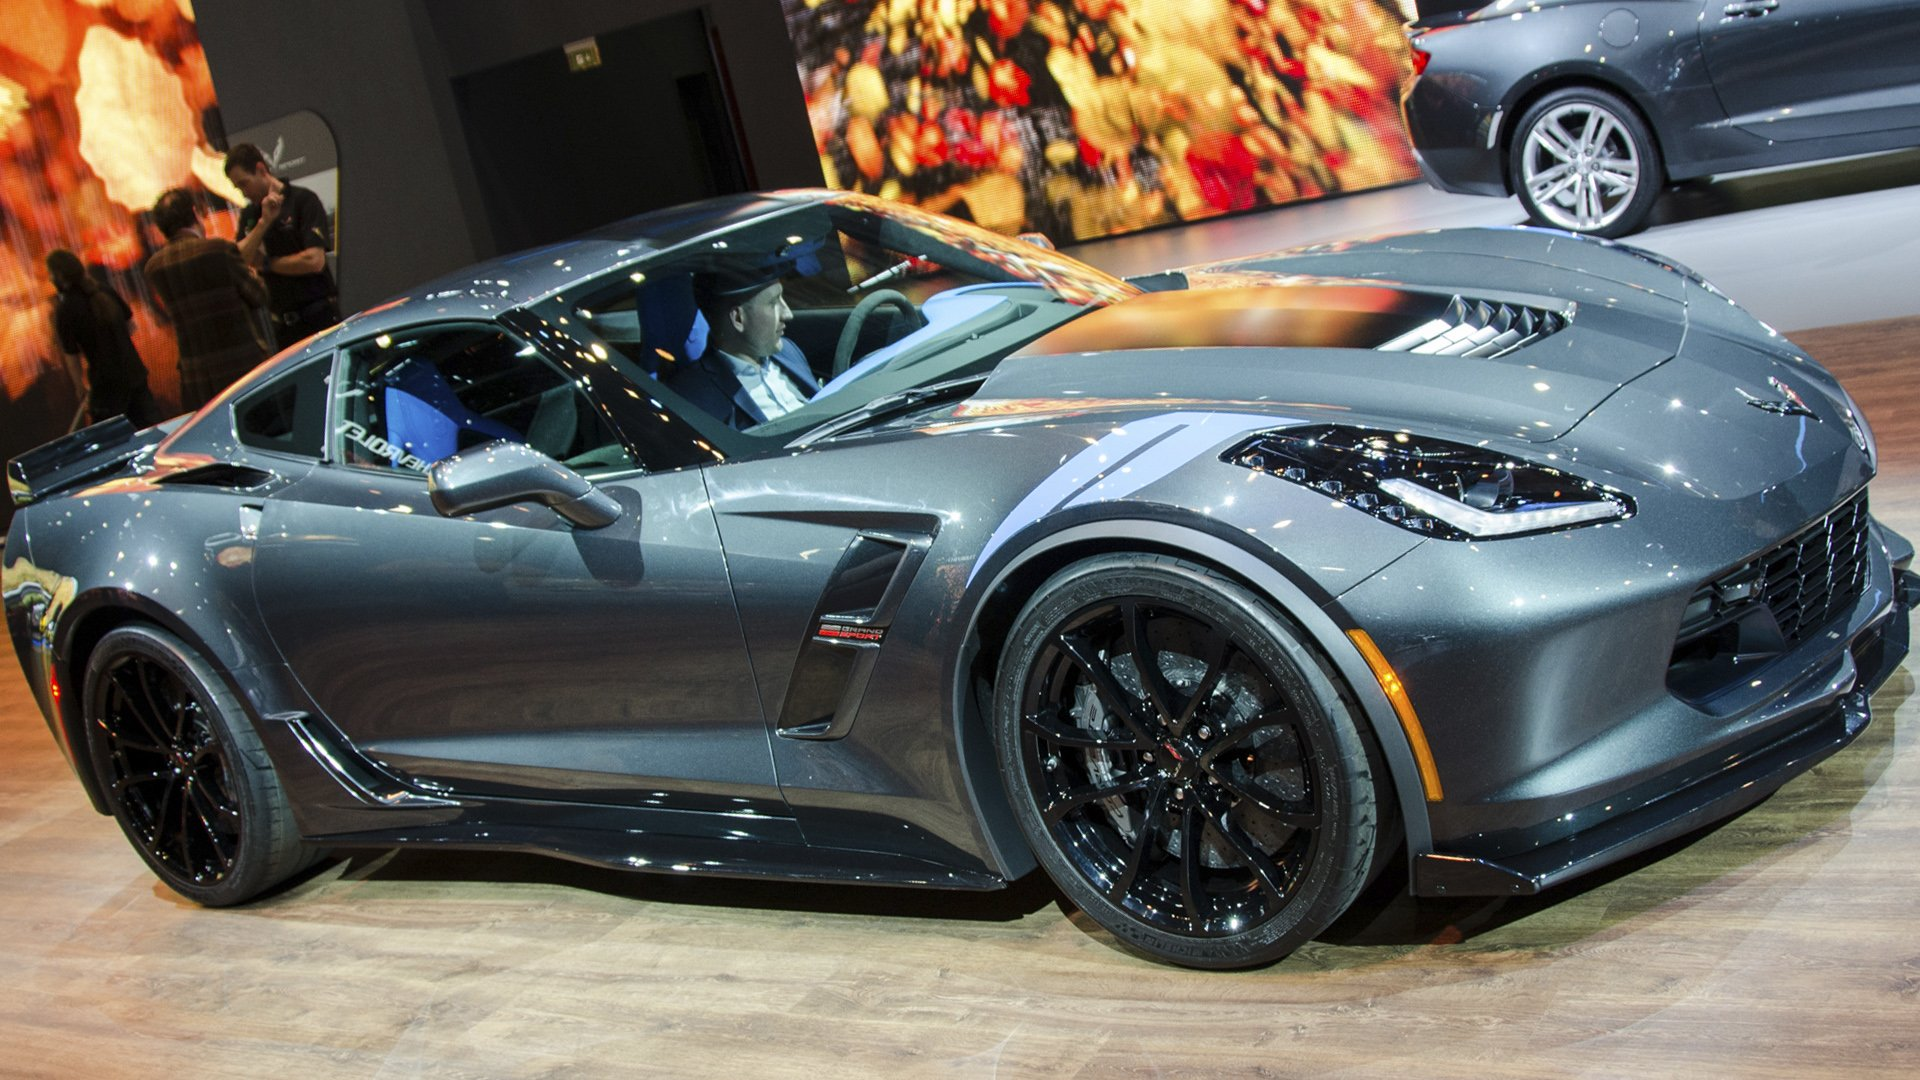 New 2019 Chevrolet Corvette First Pictures